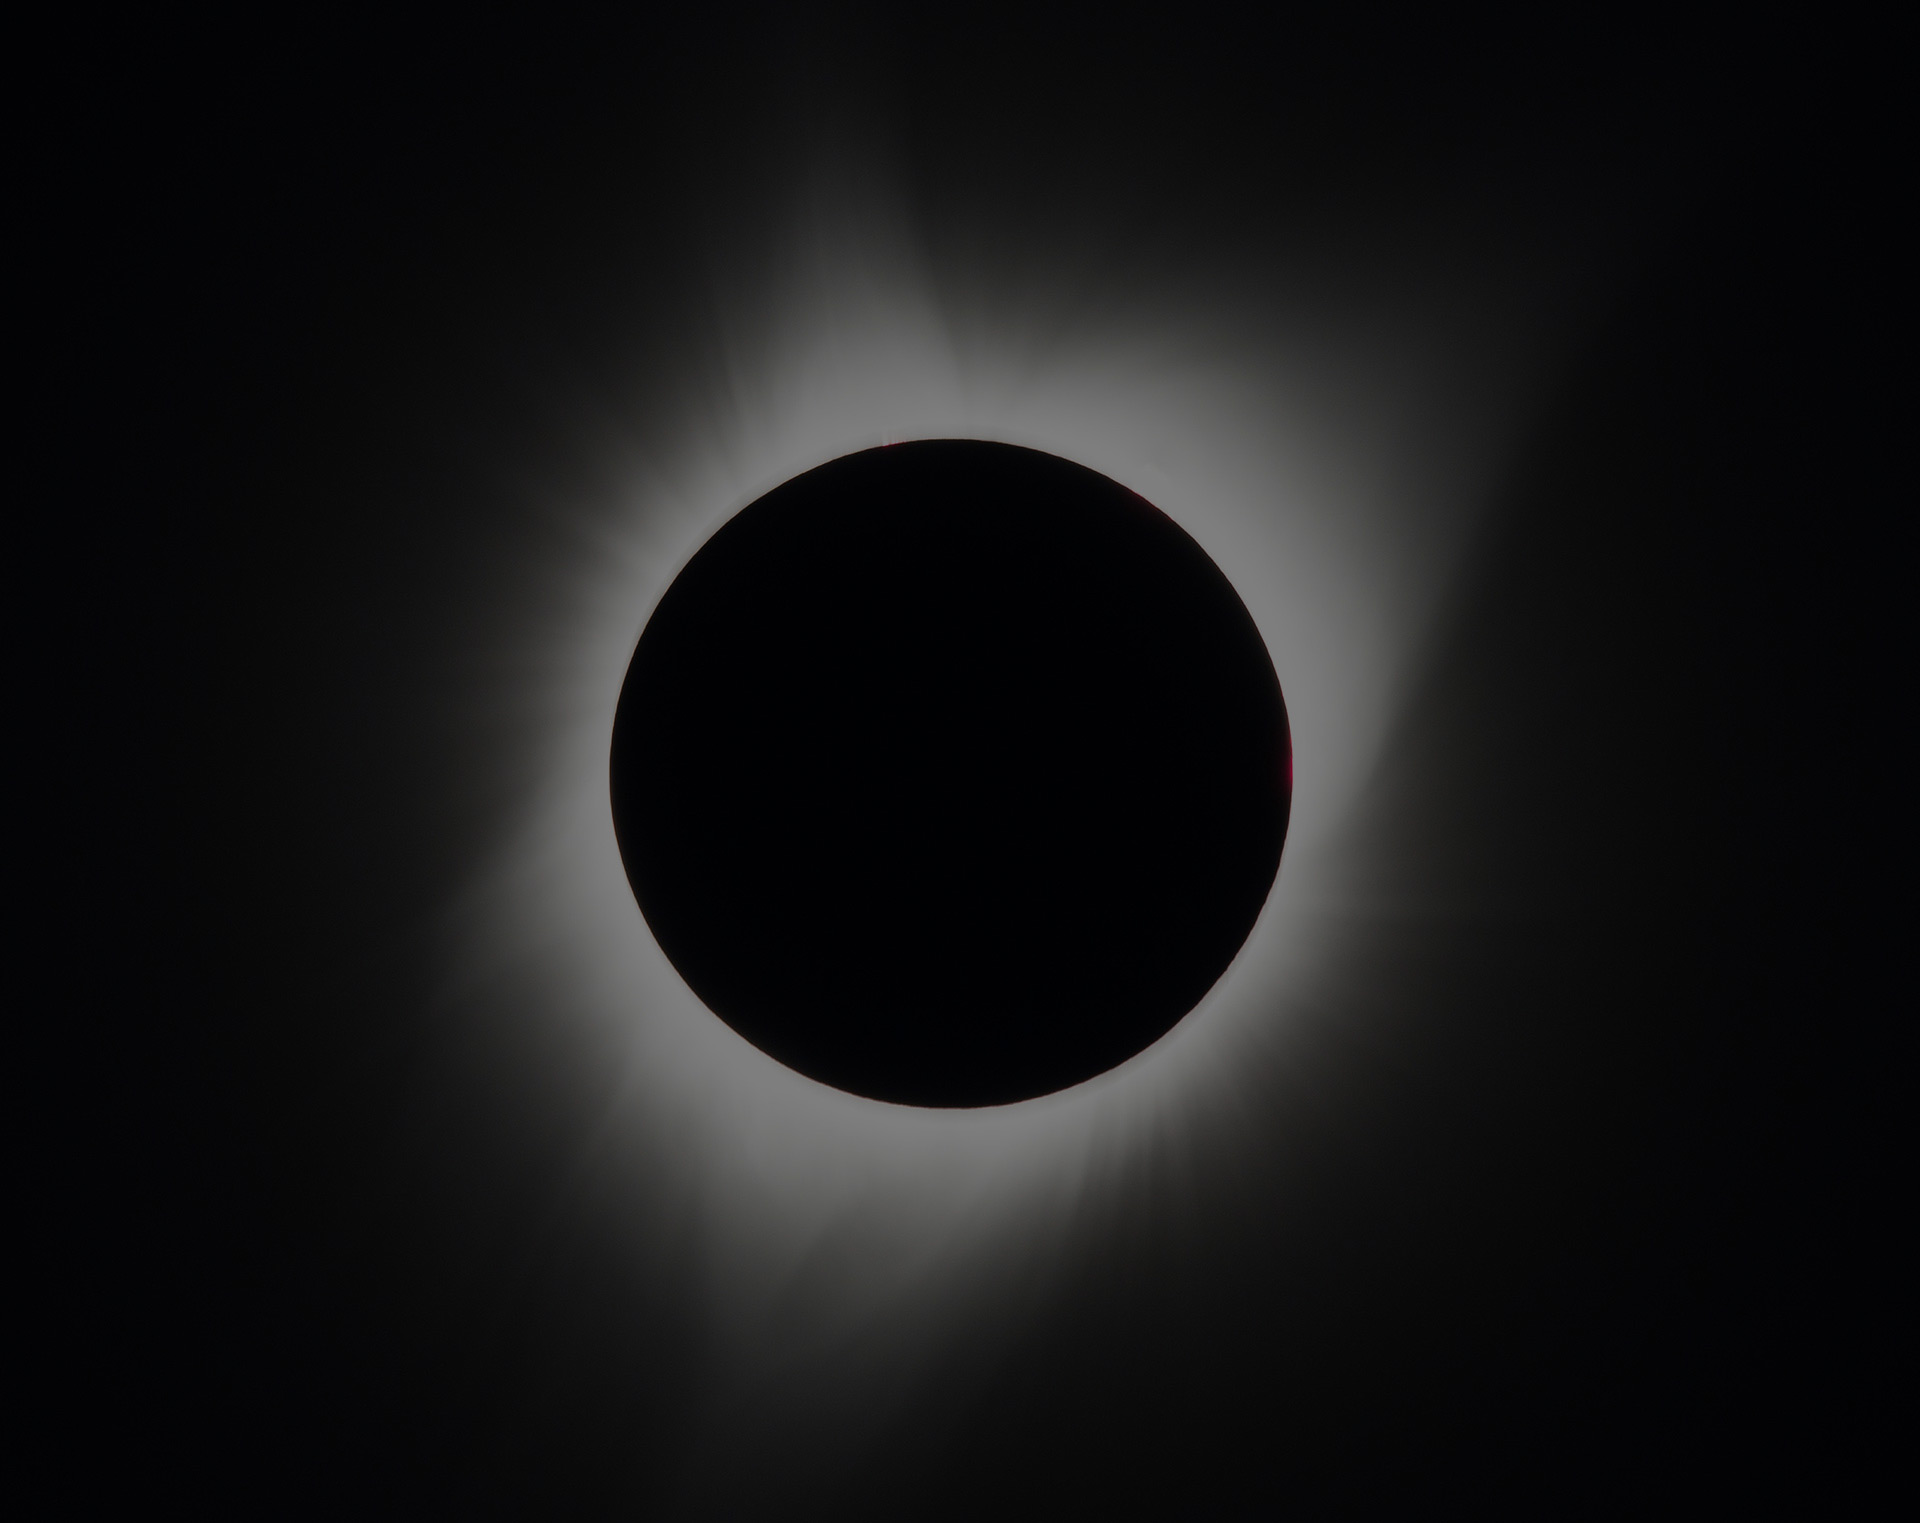 <b>NASA</b> Provided stream for the 2017 solar eclipse which had 12.1 million unique viewers.